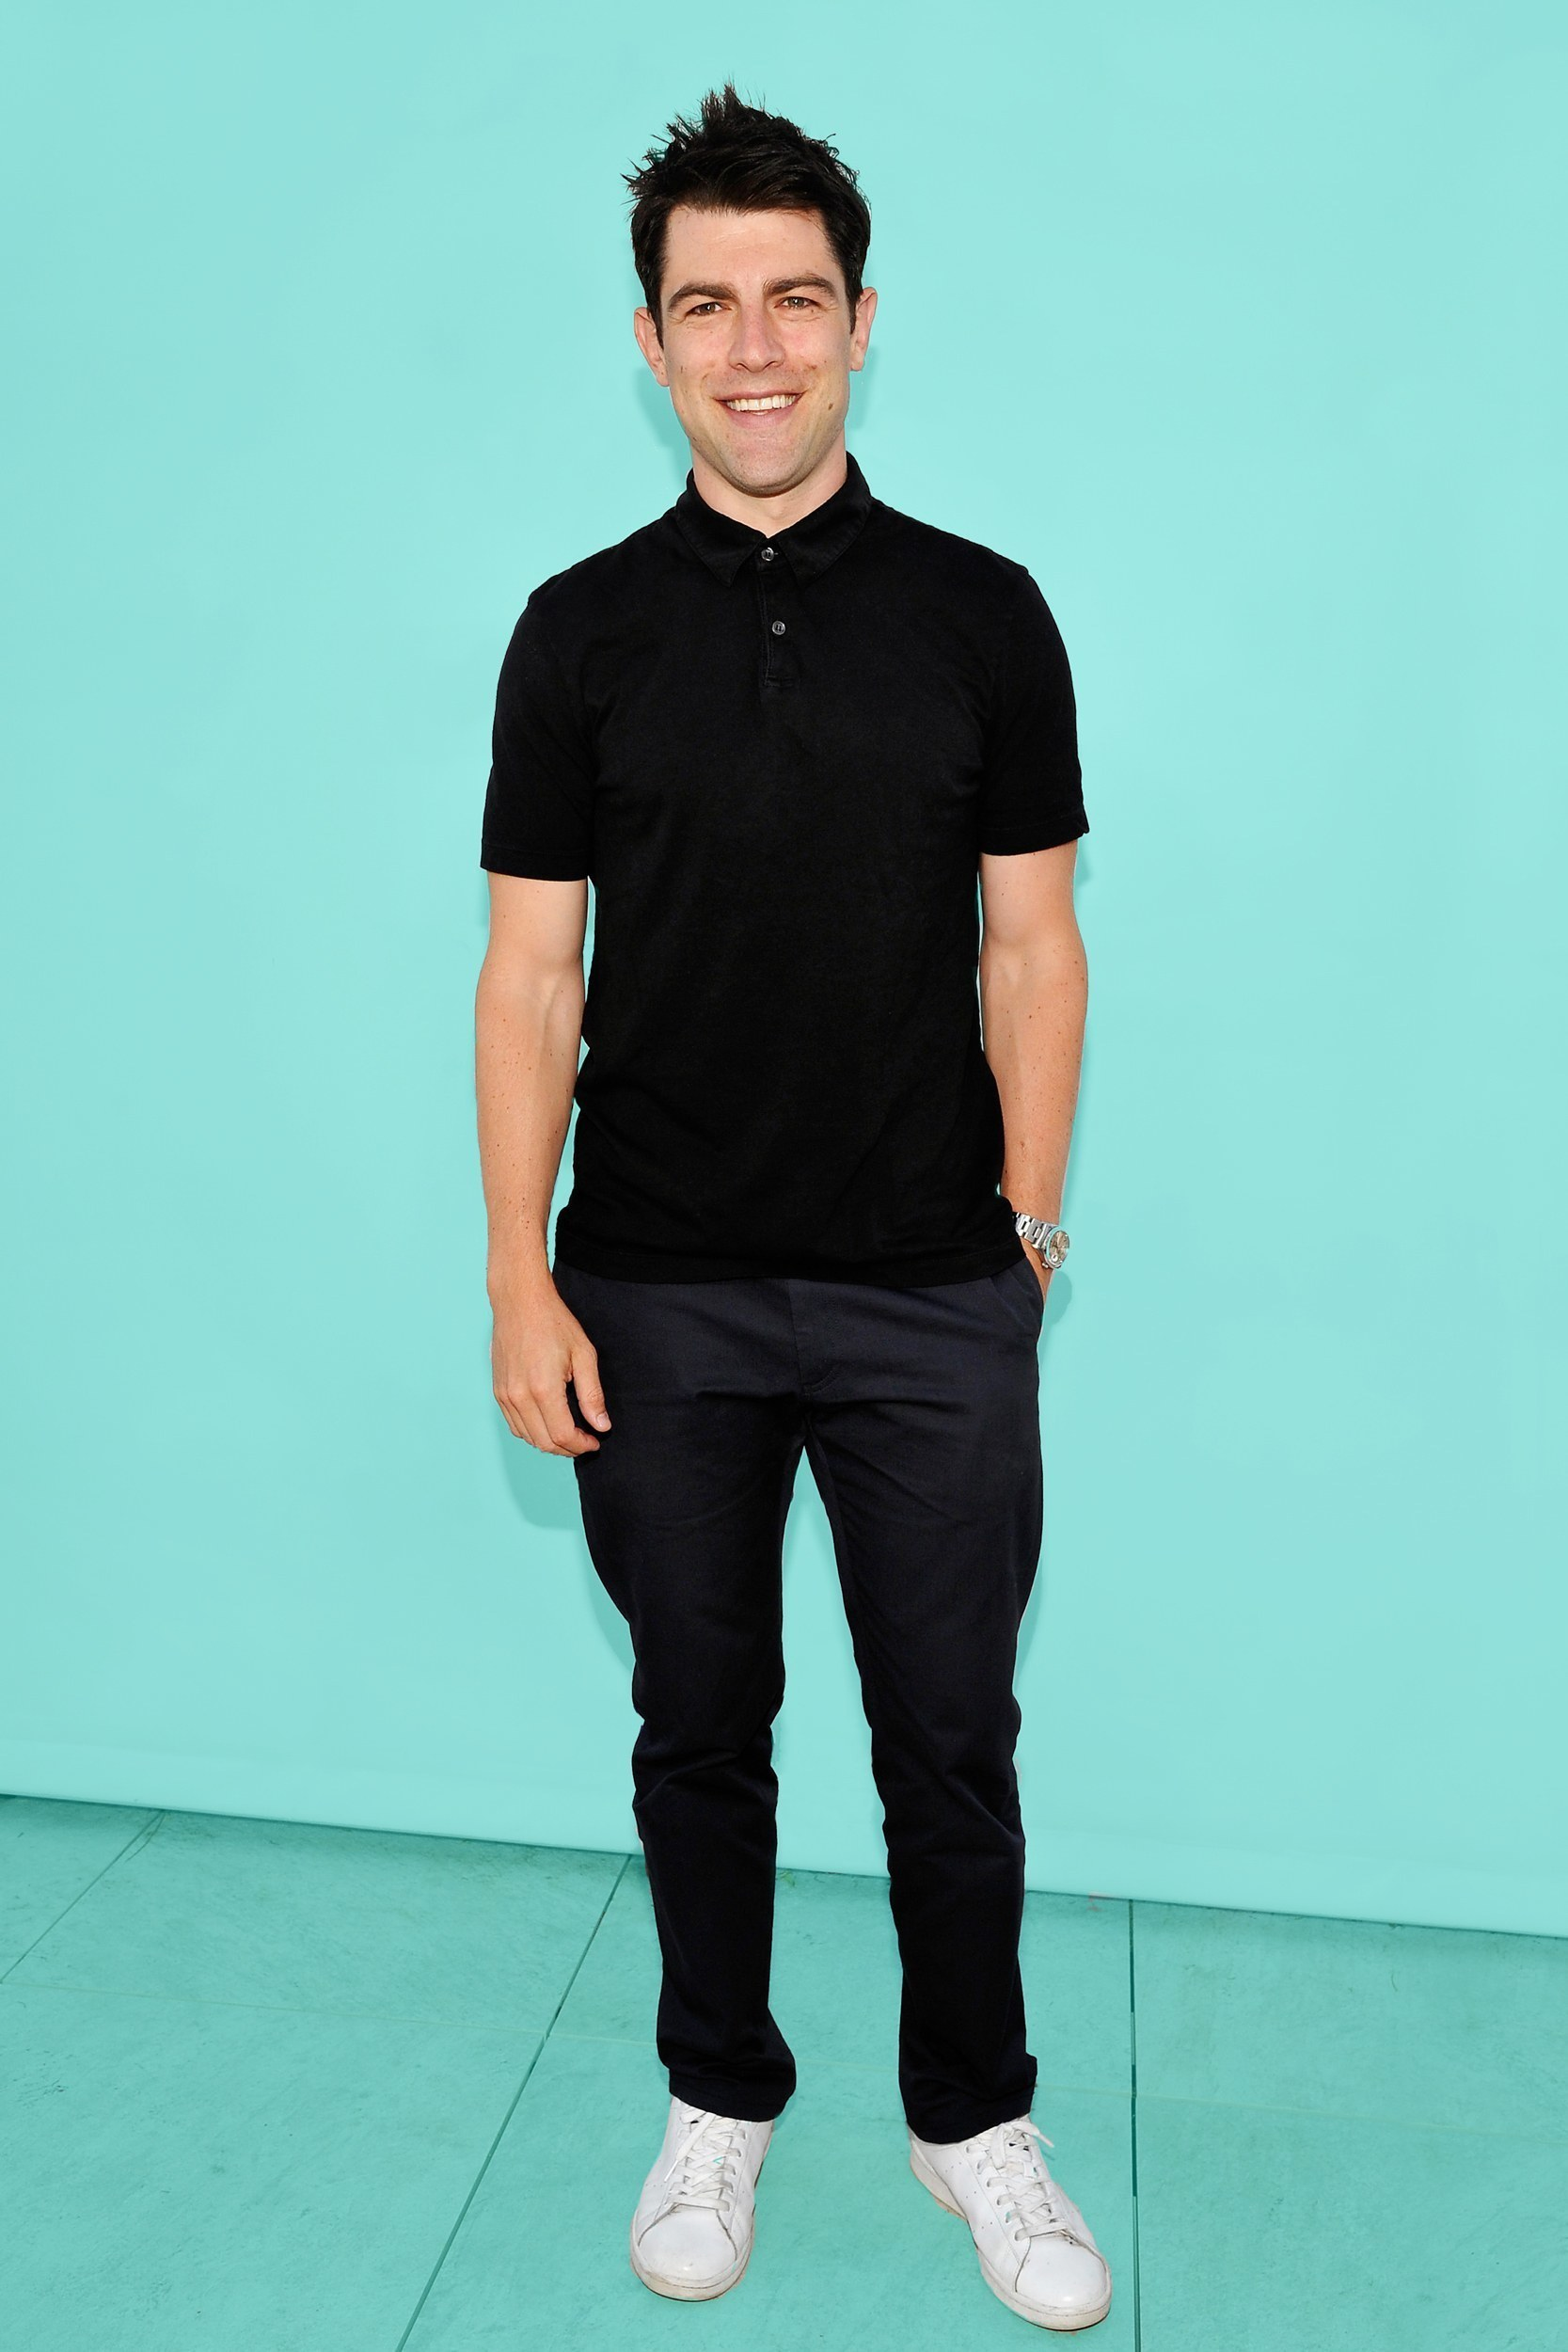 Black t shirt navy pants - Men S Black Polo Navy Chinos White Leather Low Top Sneakers Men S Fashion